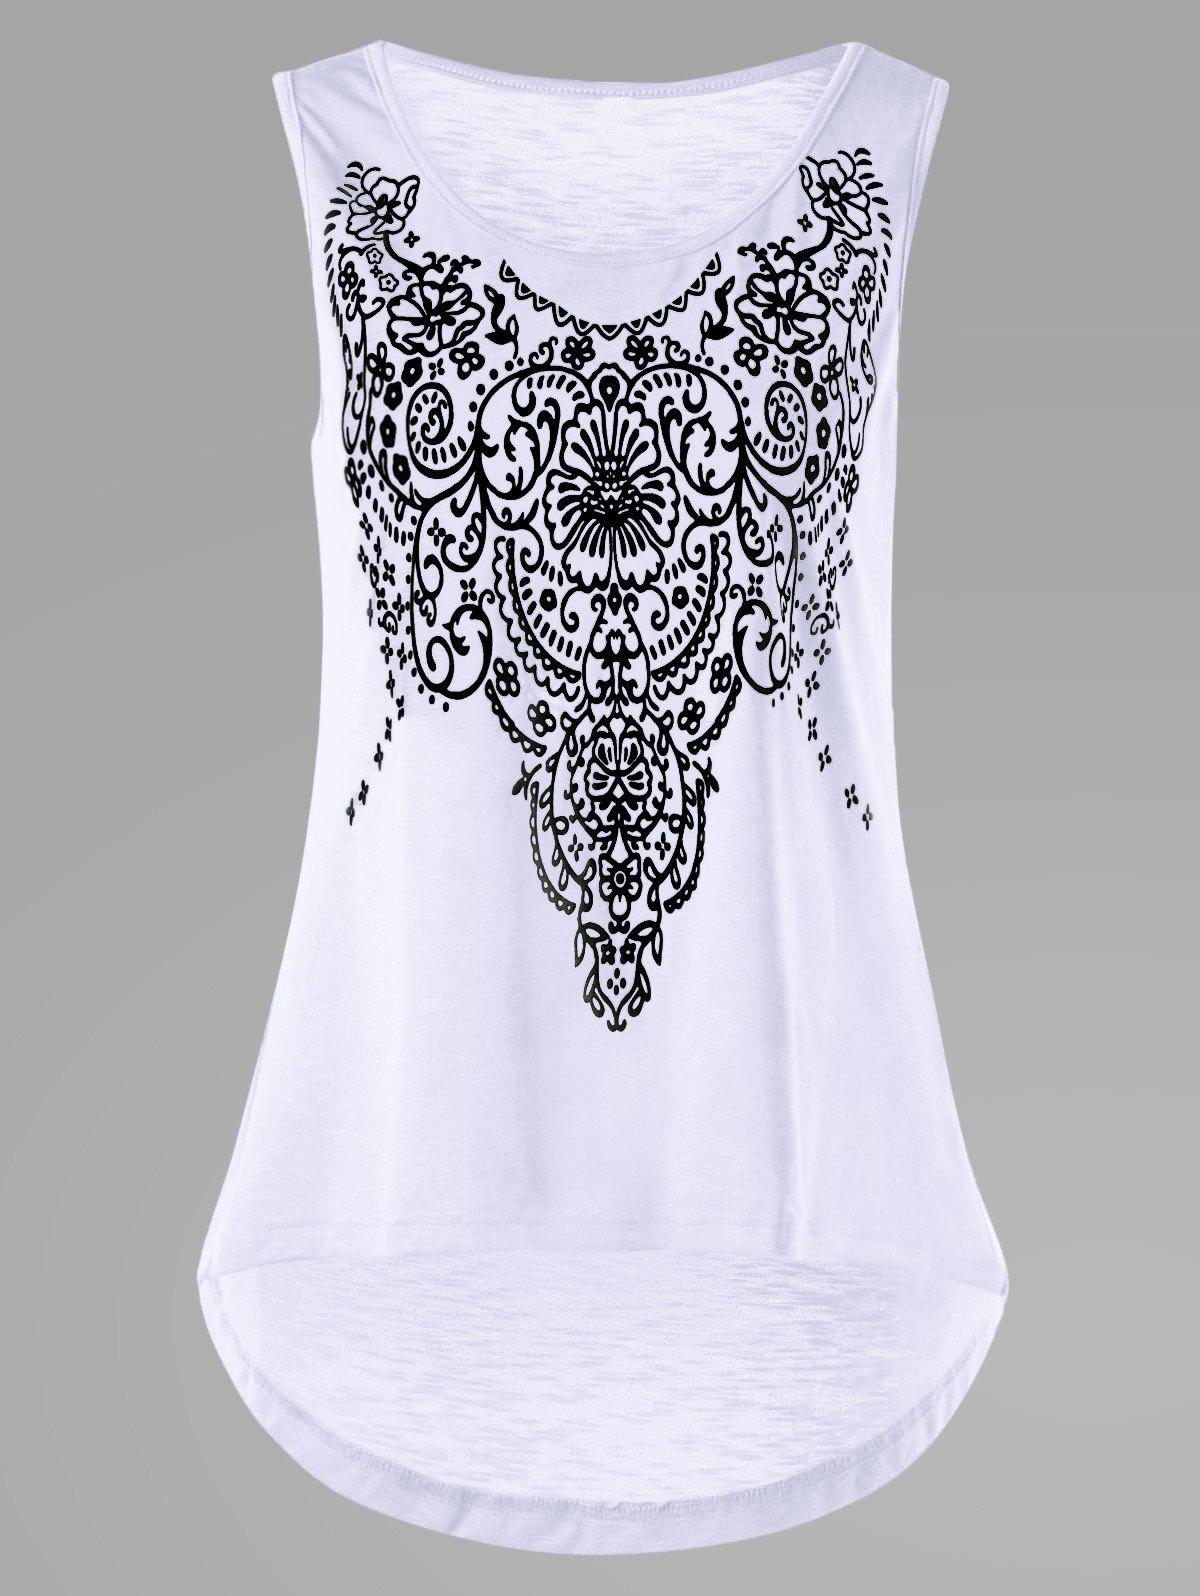 Sleeveless Bandana Floral High Low Hem T-shirt bandana buff skull